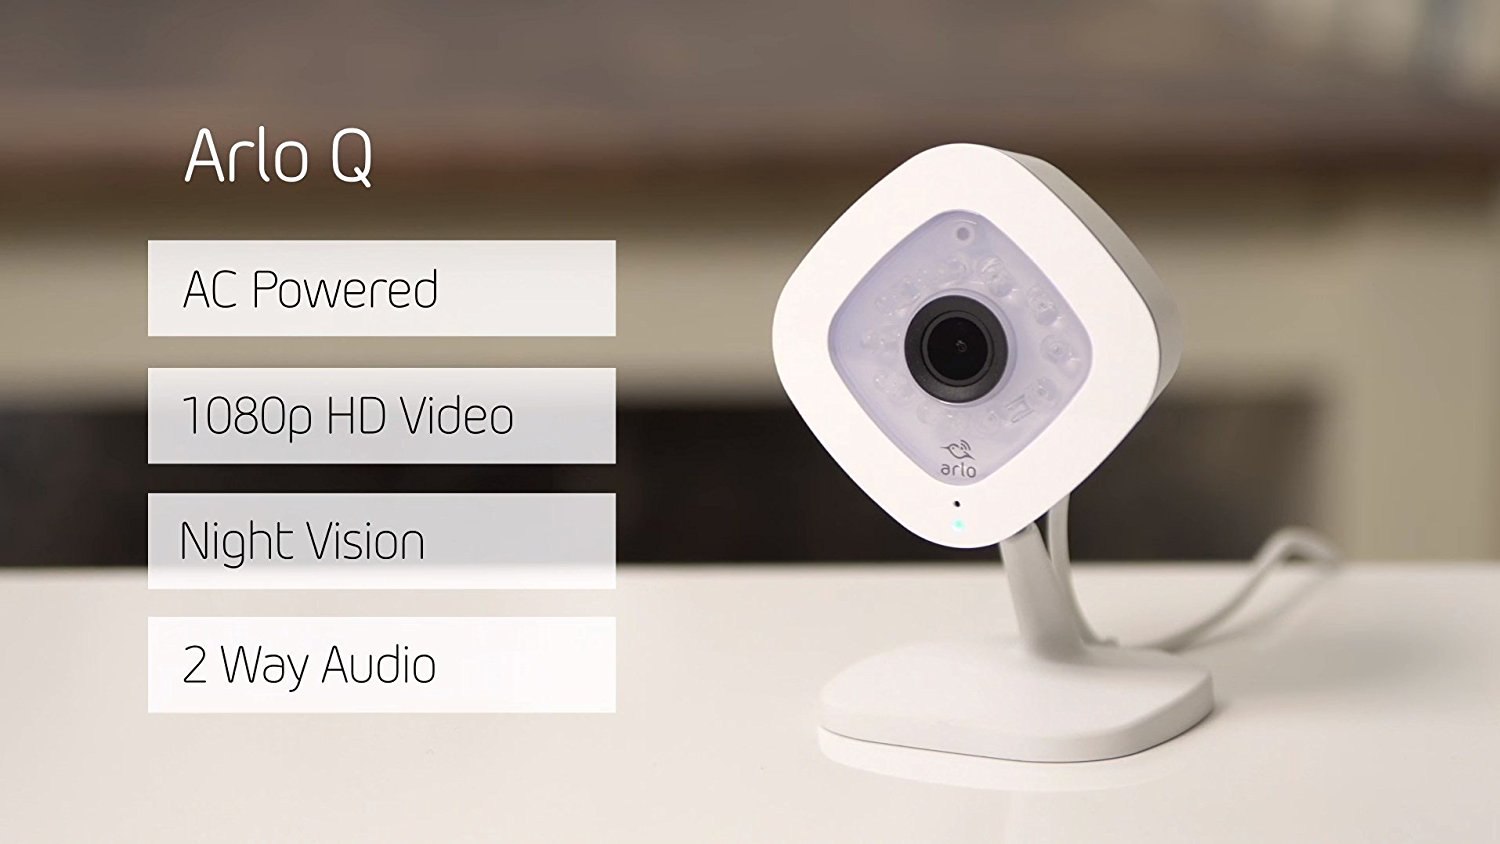 An image of the Arlo Q security camera